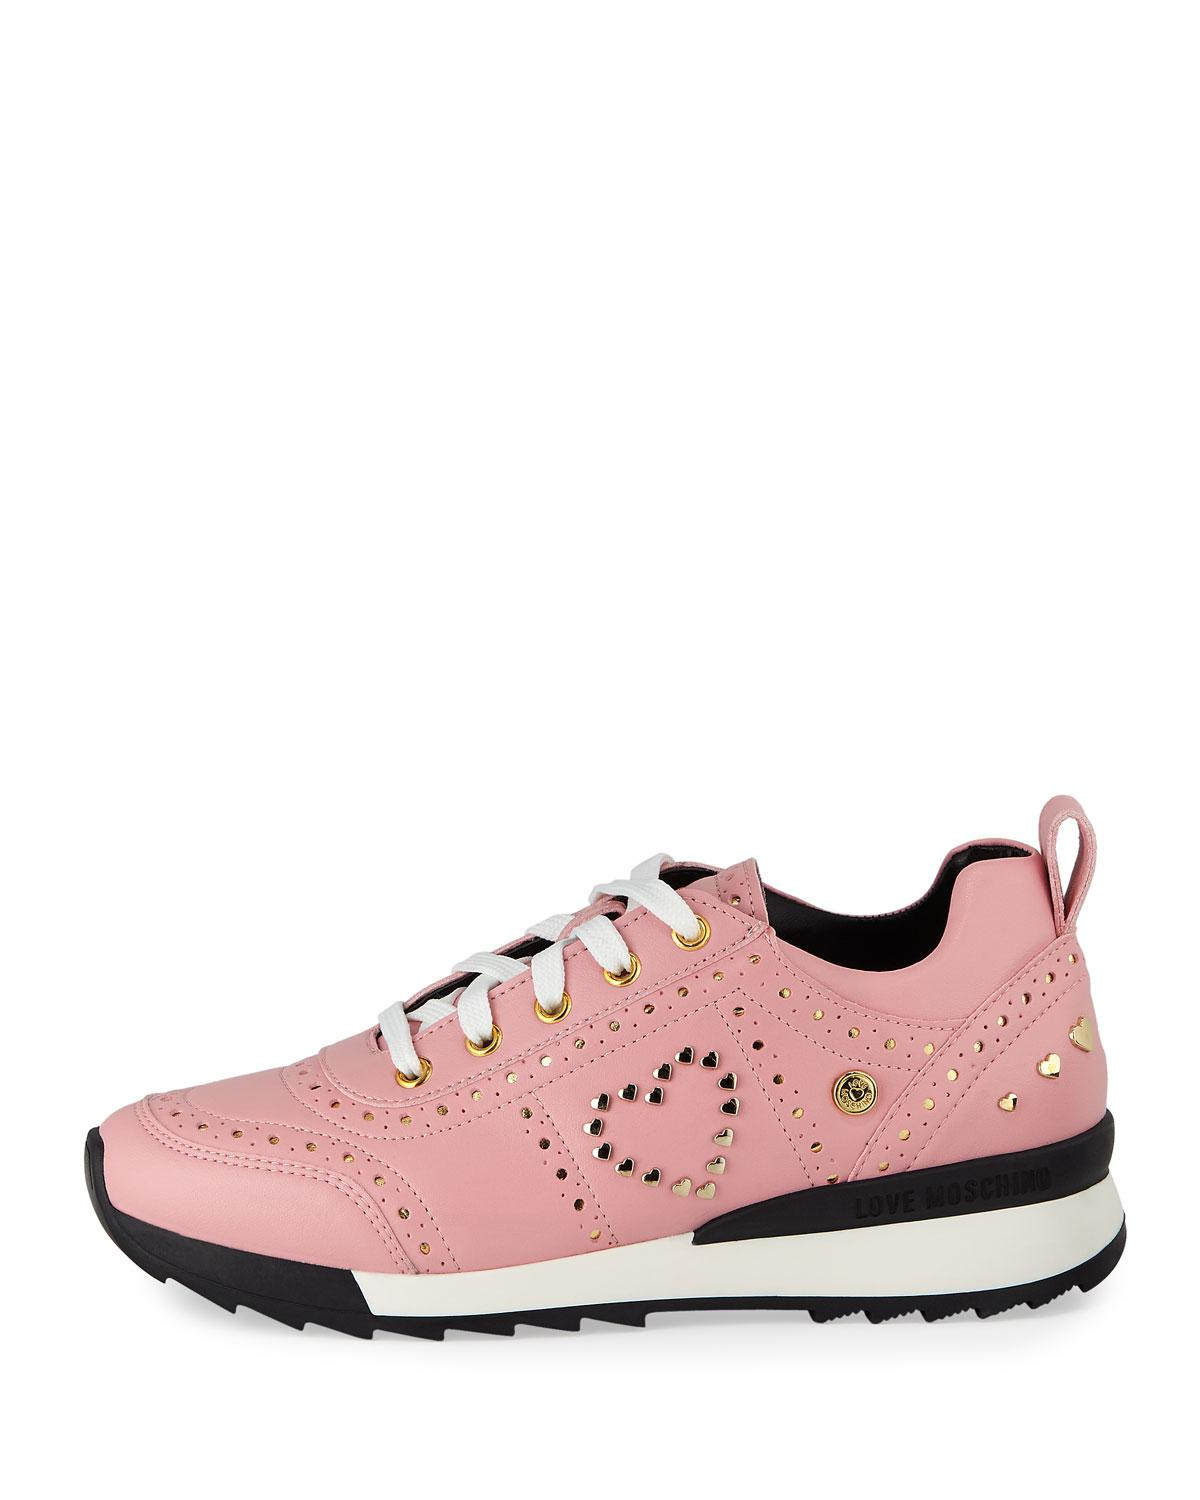 a15674581d4 Lyst - Love Moschino Power Studded Perforated Sneakers Pink gold in Pink -  Save 15%